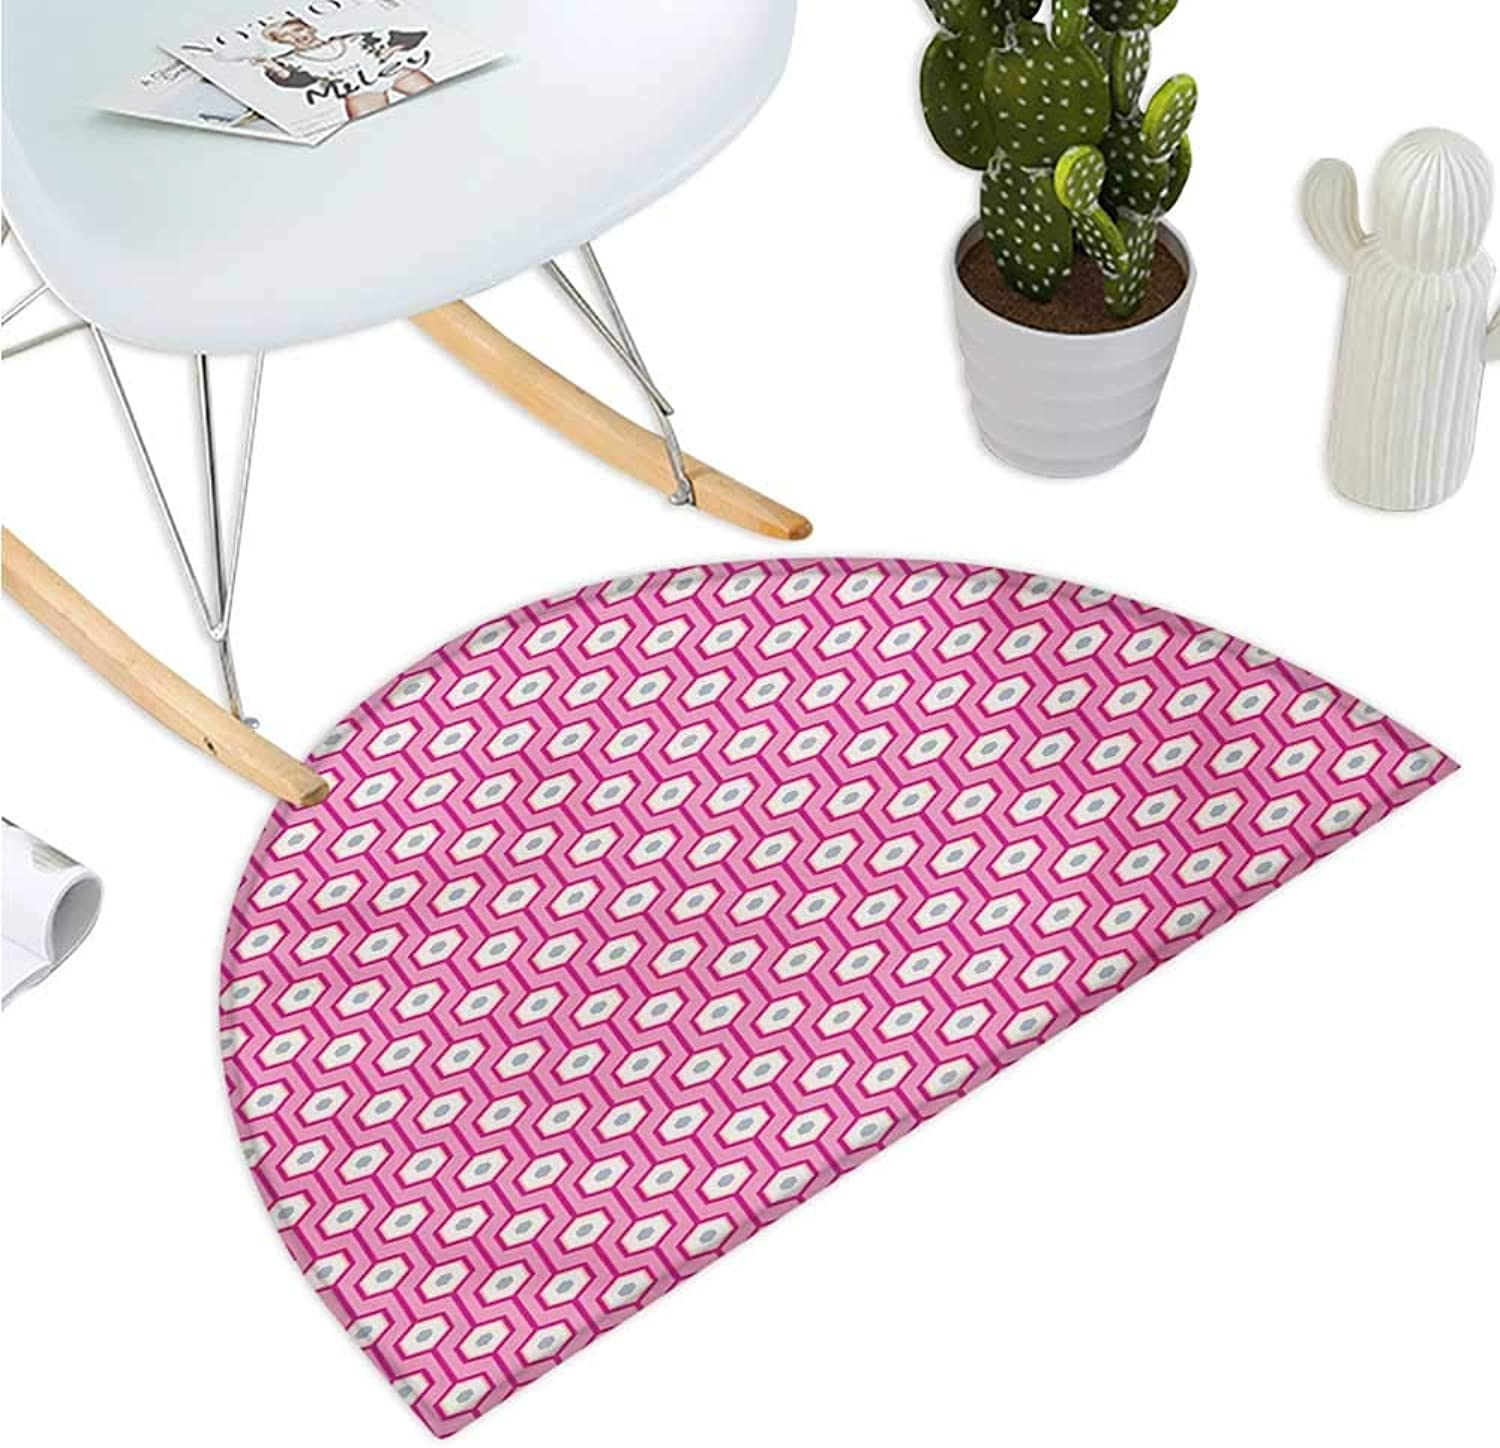 Pink Semicircle Doormat greenical Hexagonal Shapes with Dots Inside Tied with Lines Geometric Vibrant Halfmoon doormats H 43.3  xD 64.9  Pink White Baby bluee